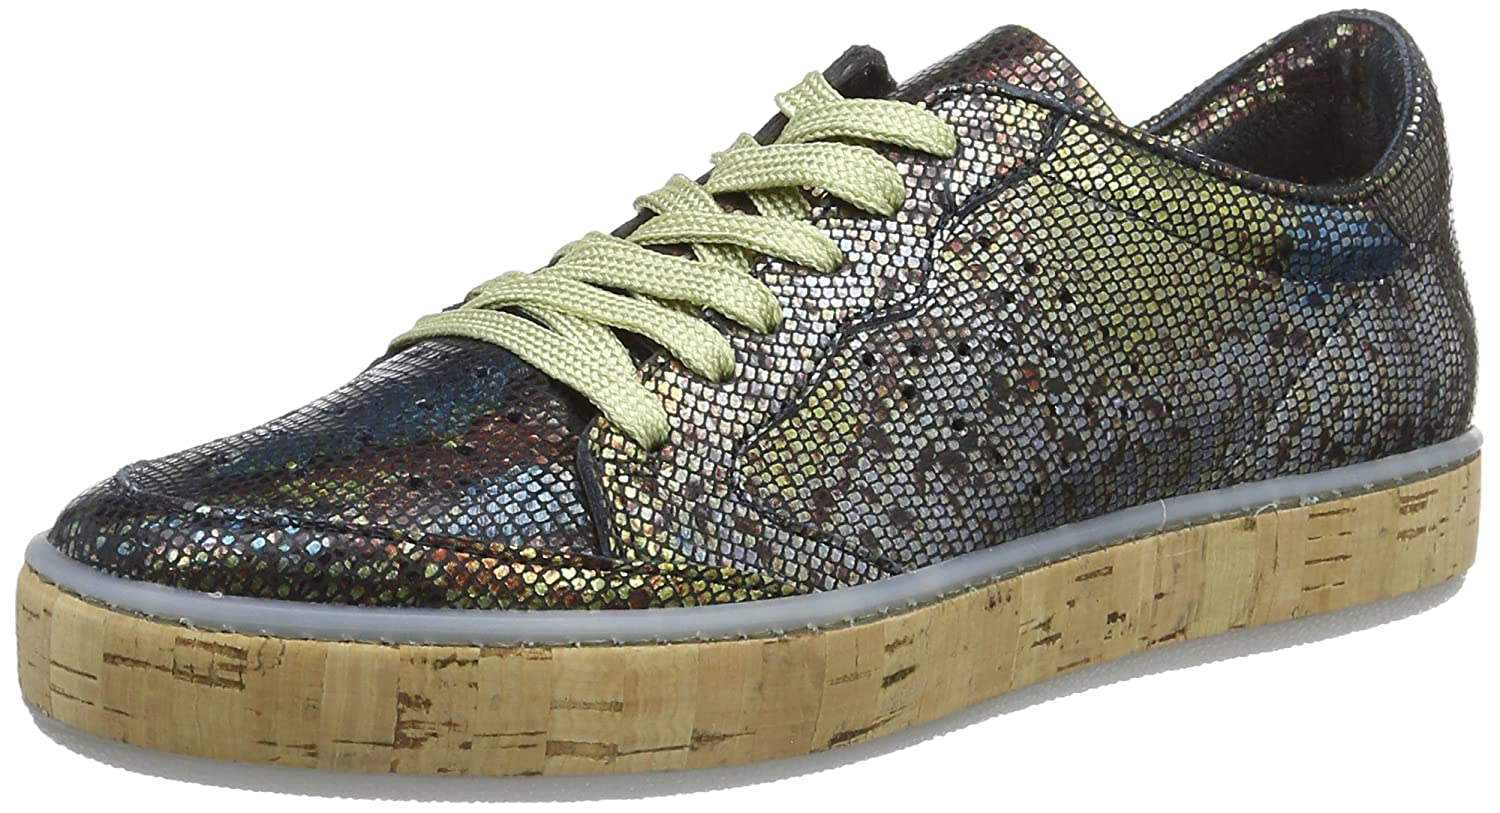 Women's 6098 Multi 876101 Top Mjus 0102 Coloured Size Sneakers Low 4LqAj35Rc